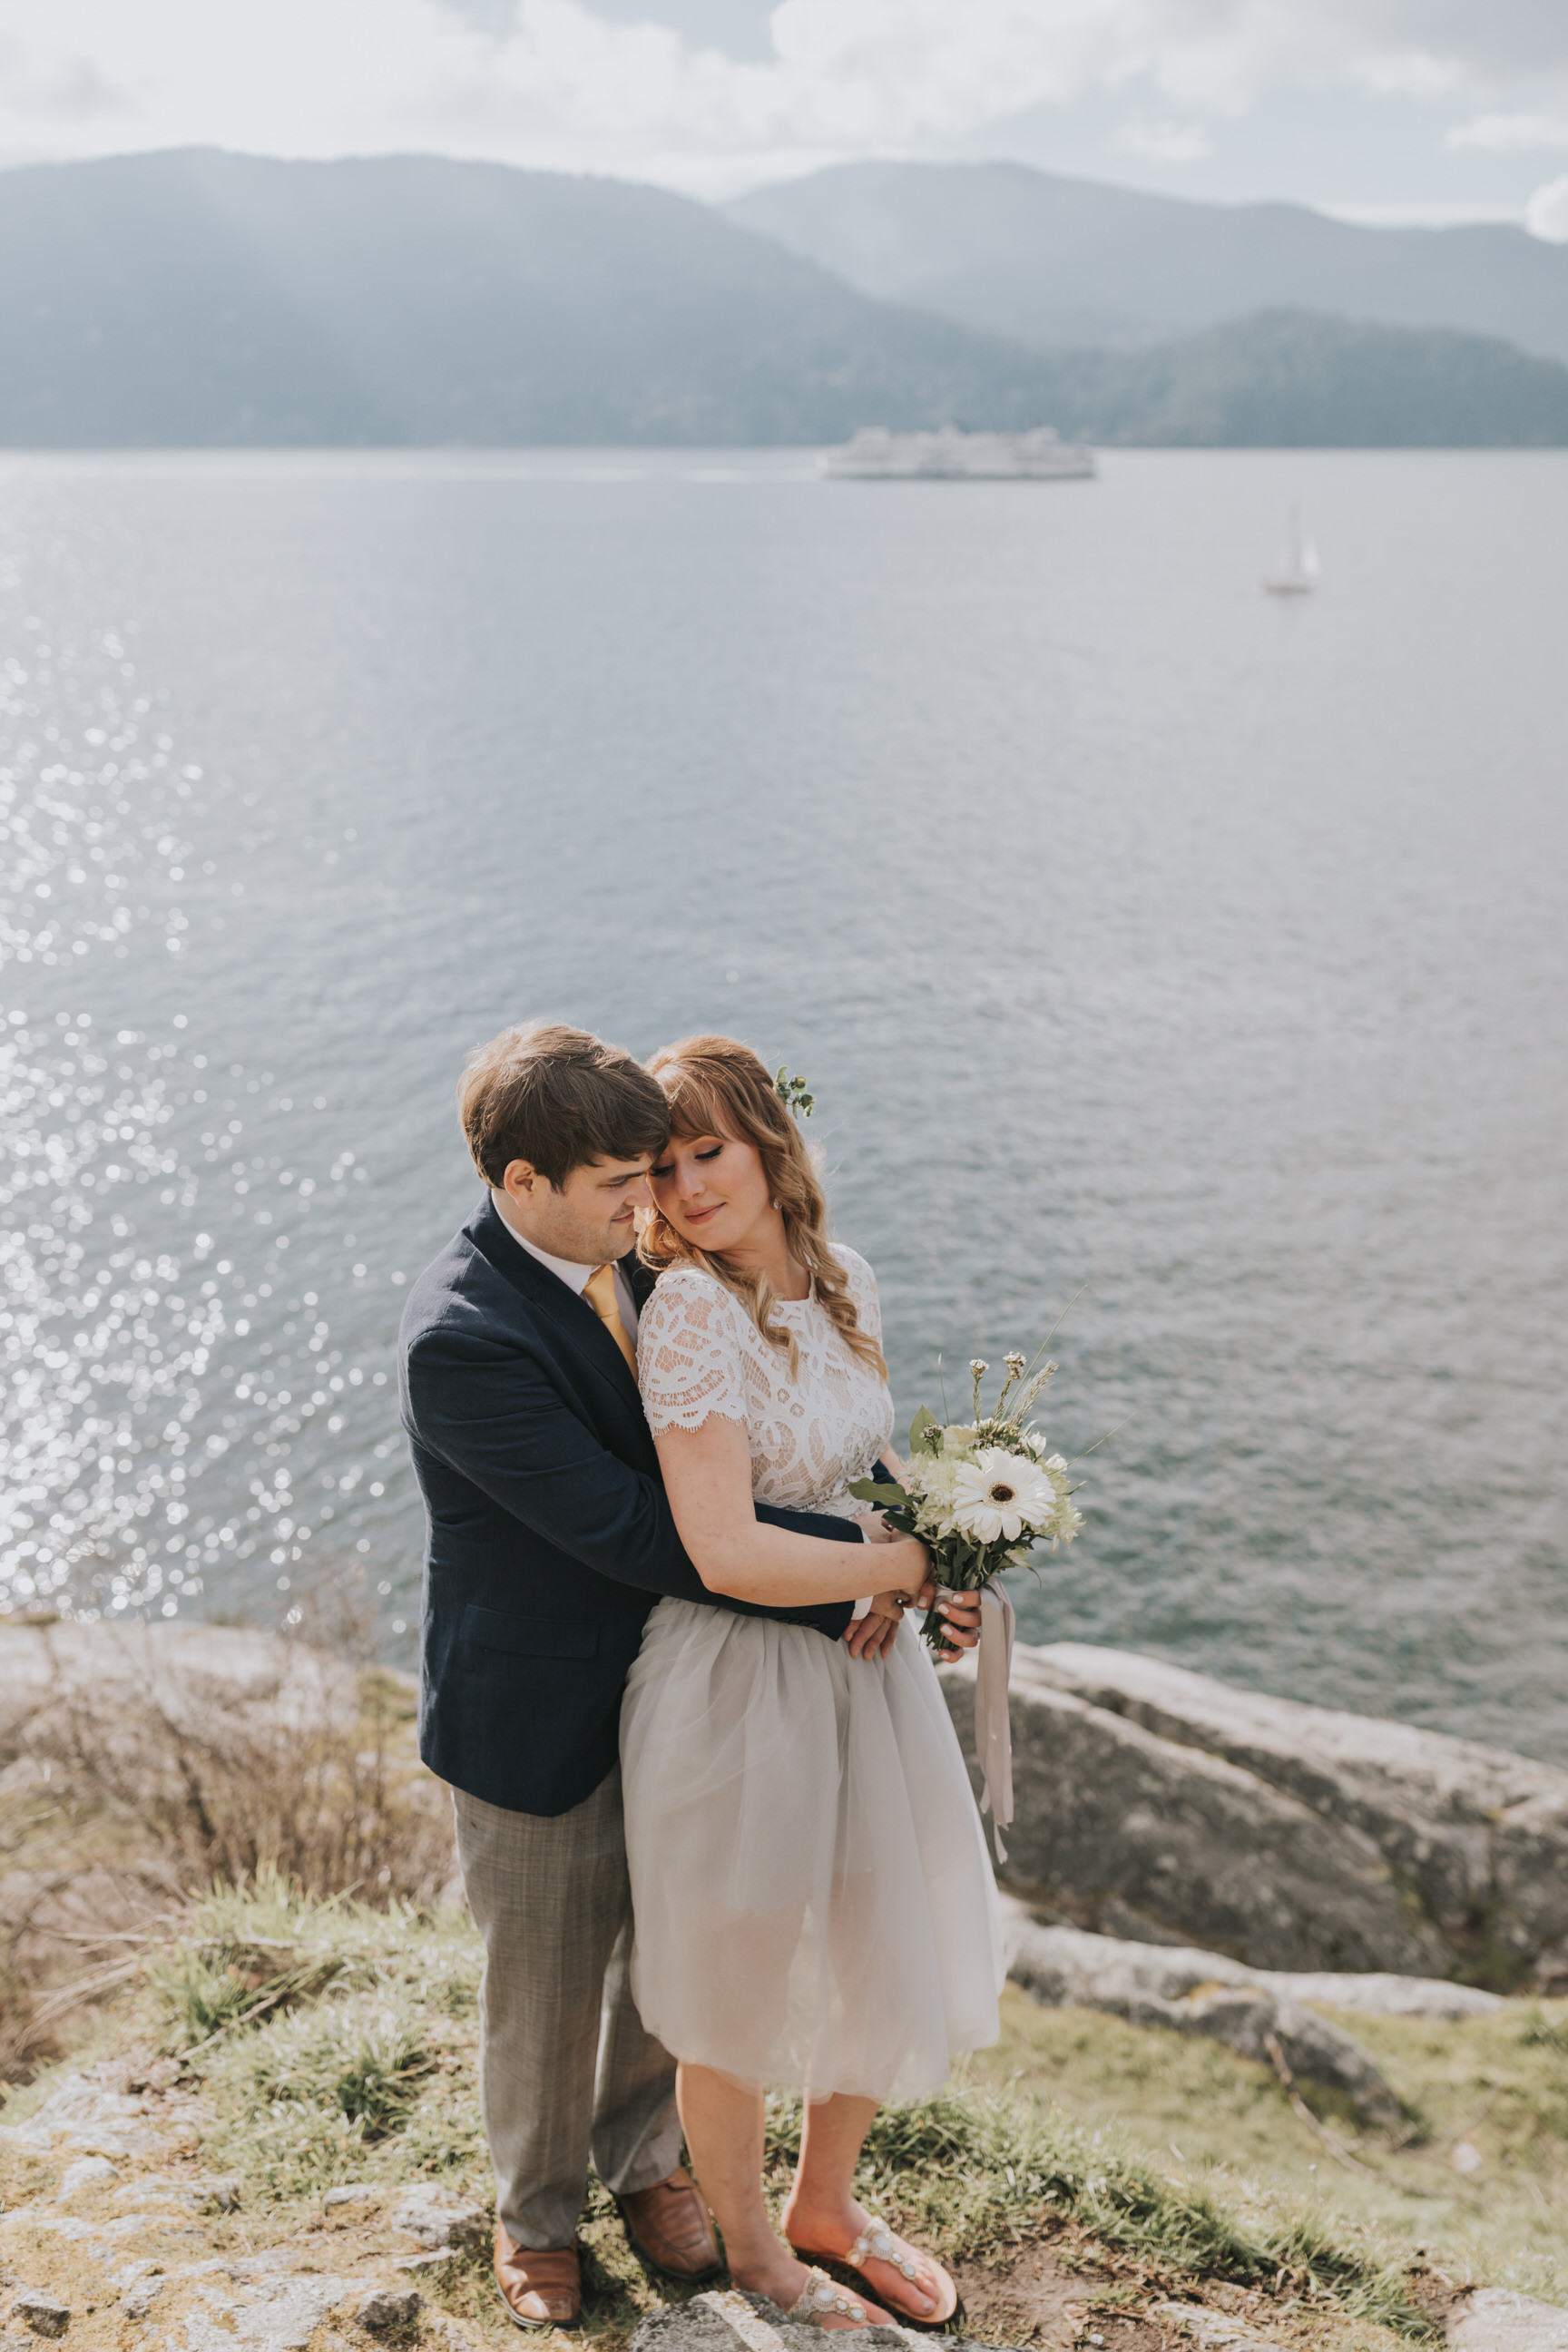 Whytecliff Park Engagement Photos - Vancouver Wedding Photographer - Jennifer Picard Photography022.JPG